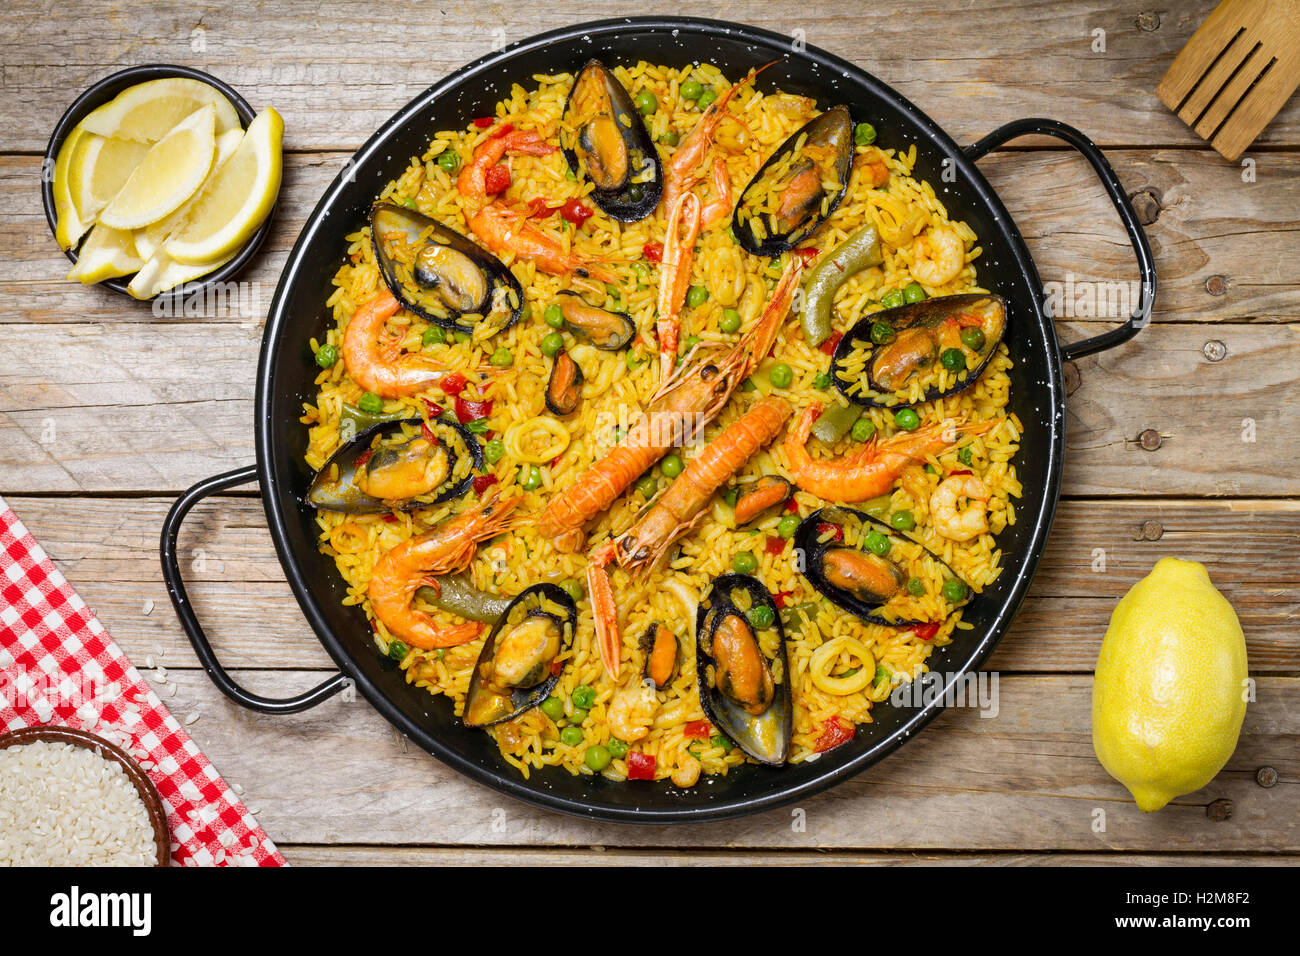 Spanish paella on a wooden table with fresh lemon and a white and red tablecloth and a wooden fork Stock Photo